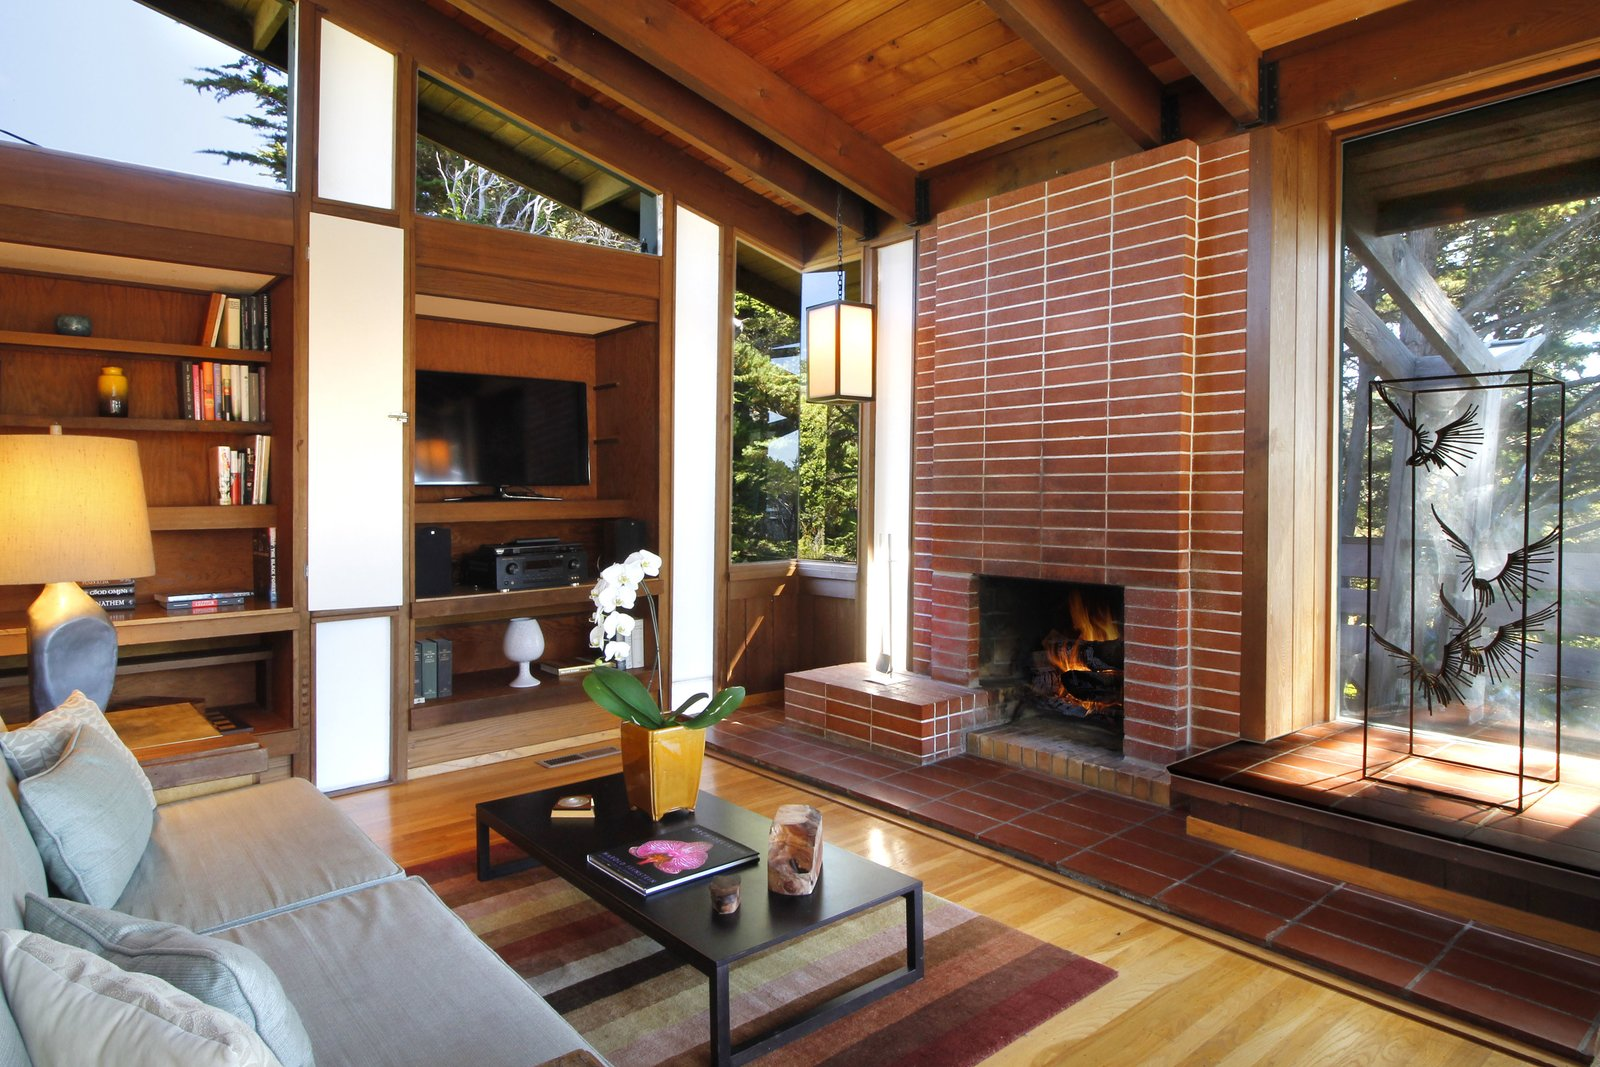 Photo 10 of 11 in A Perfectly Preserved Midcentury Pad in Northern California Asks $1.975M